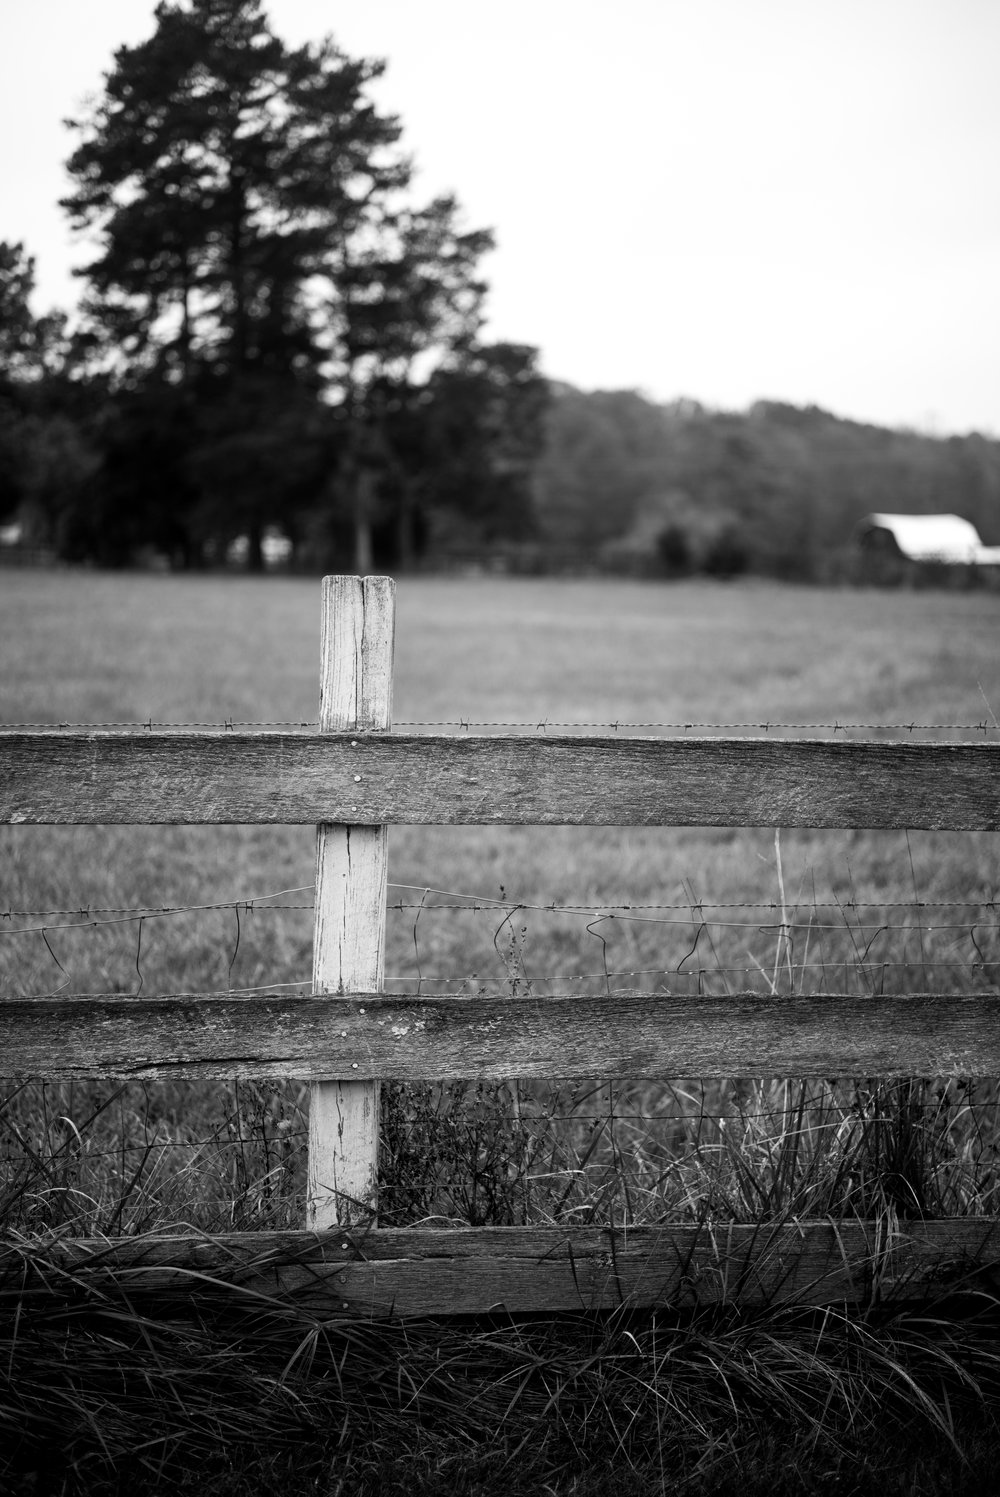 Looking over the fence toward the neighbor's farm